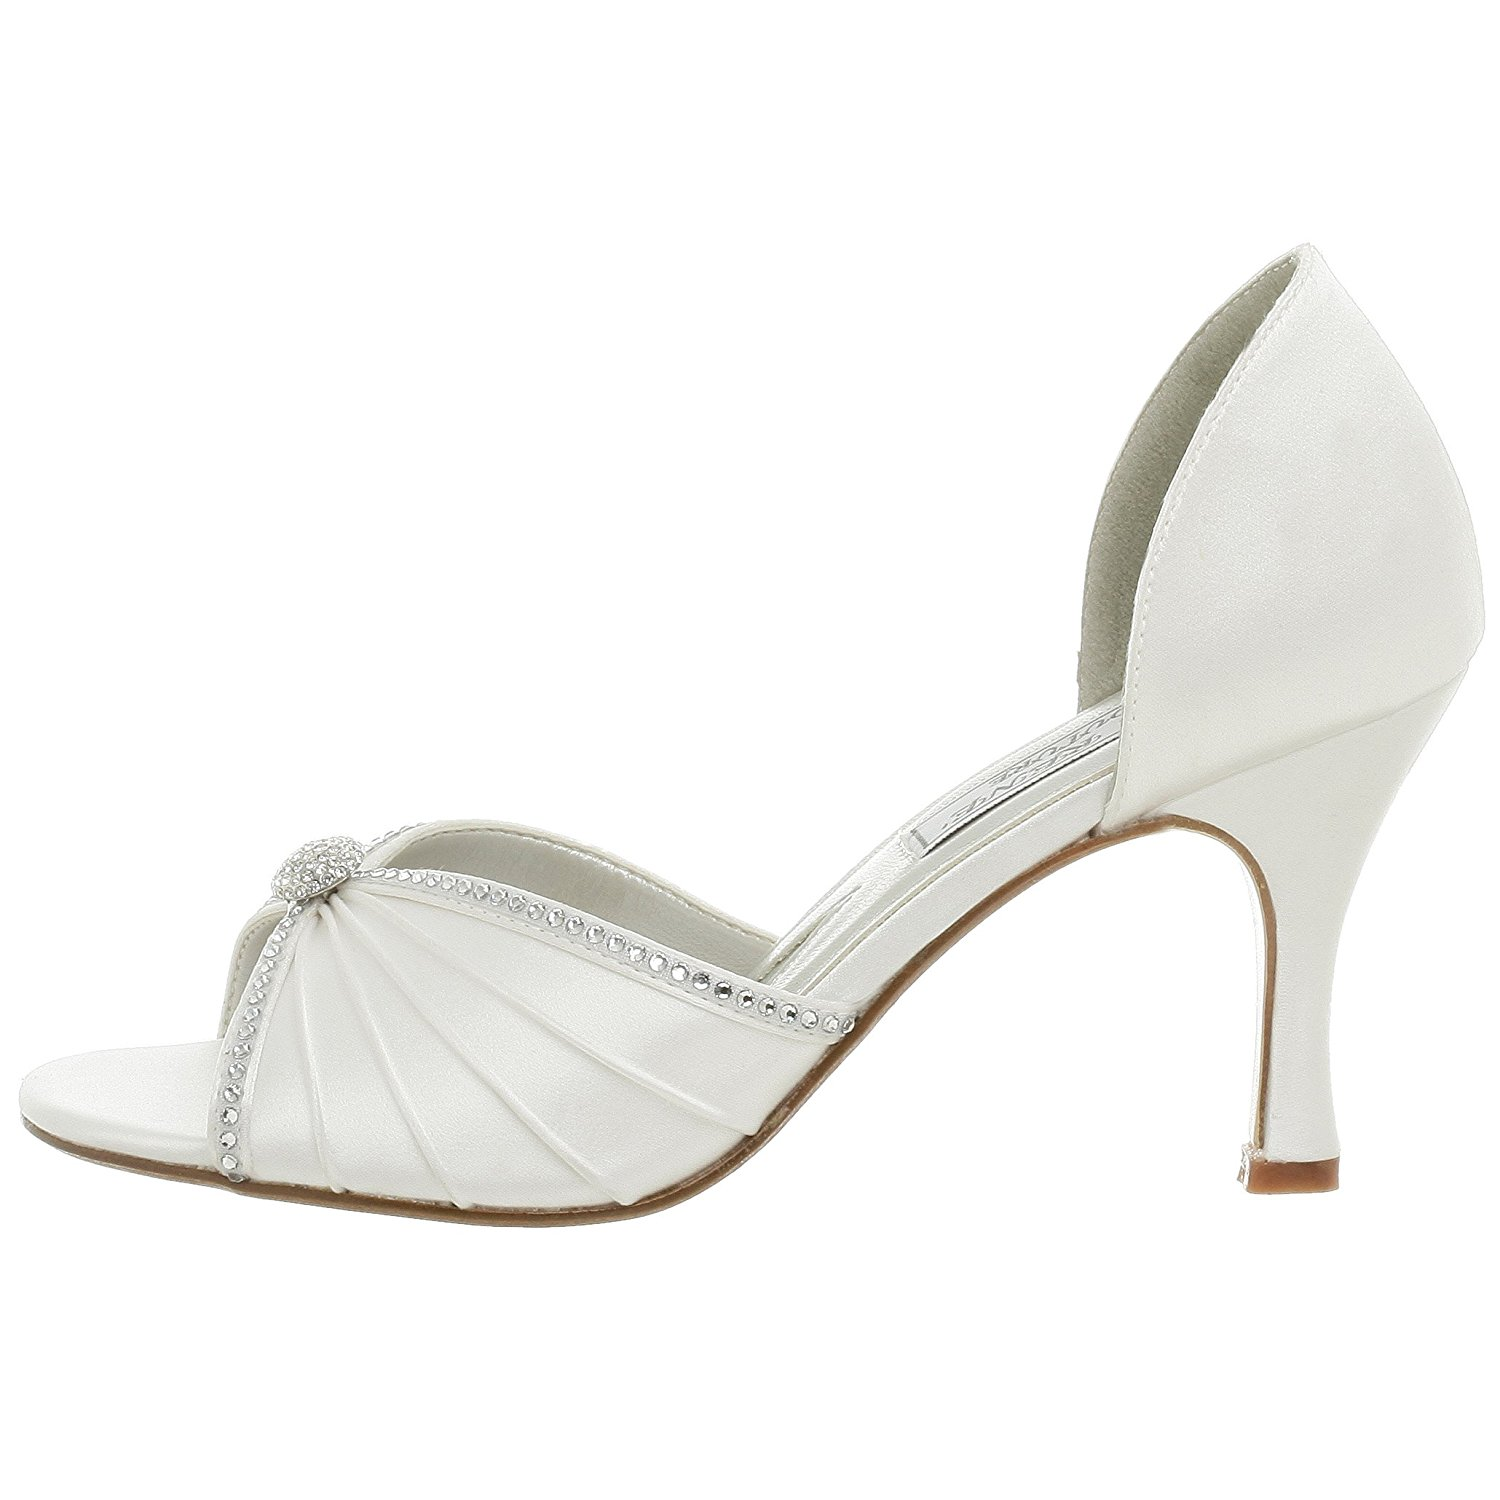 Liz Rene Couture Addison Women's White Sandal 5M by Liz Rene Couture